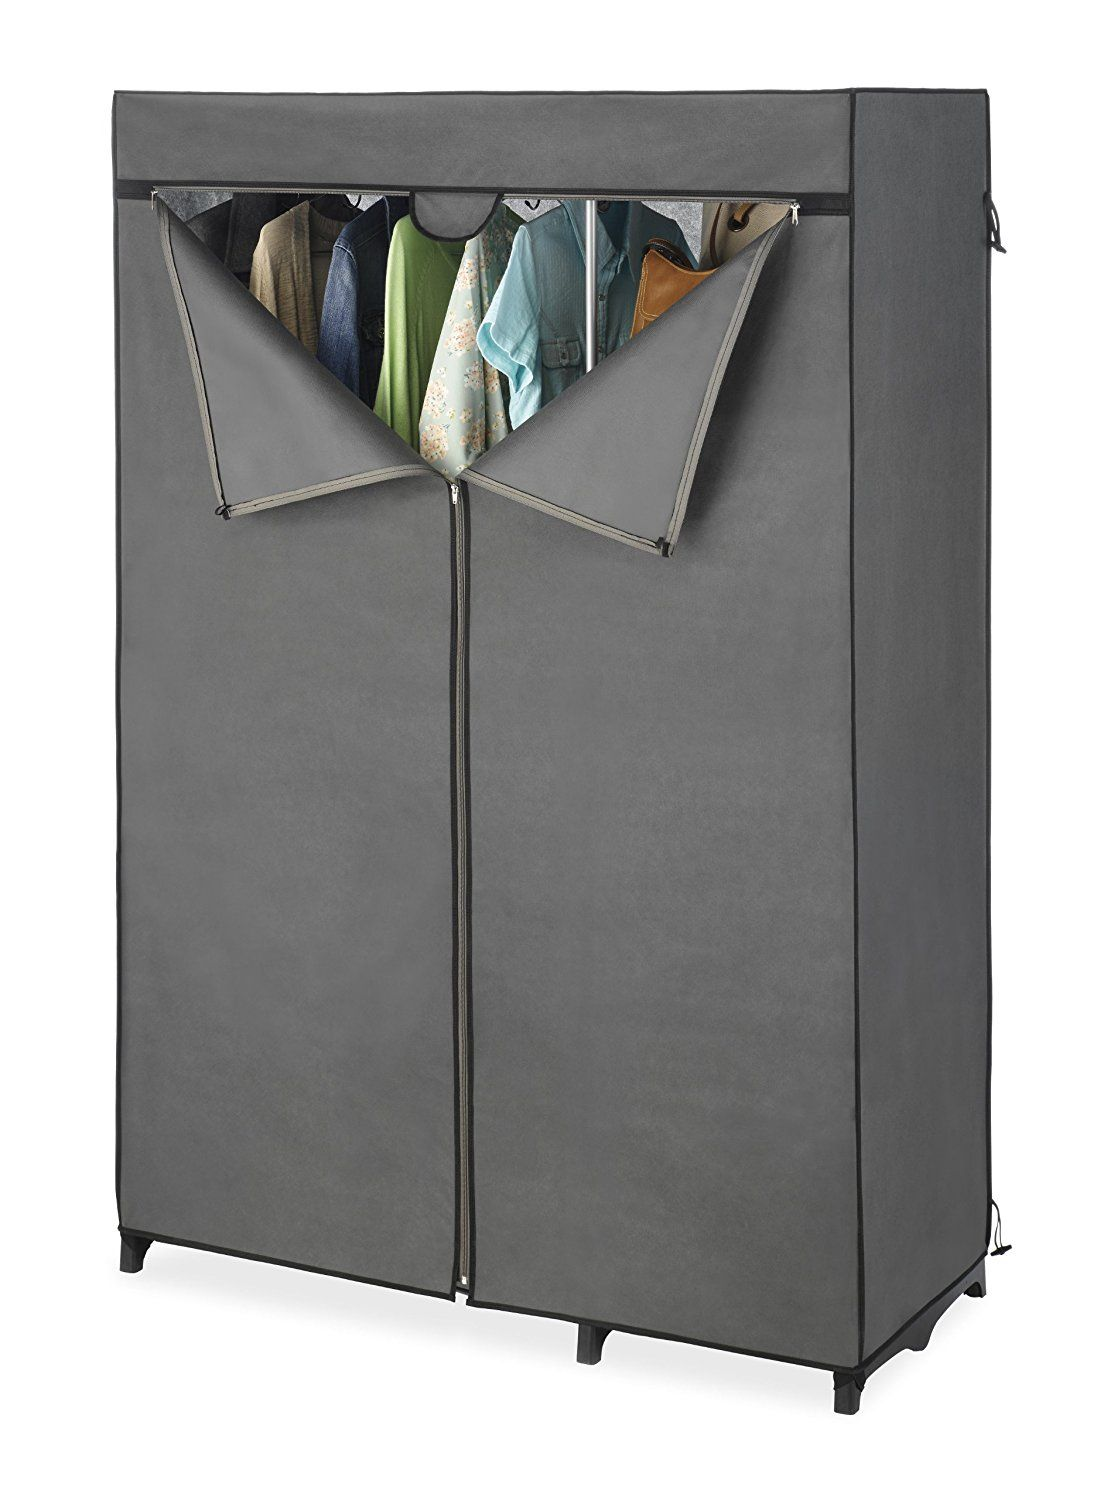 Price: $19.99. 4,610 Customer Reviews. COVER ONLY For Whitmor Double Rod  Closet: